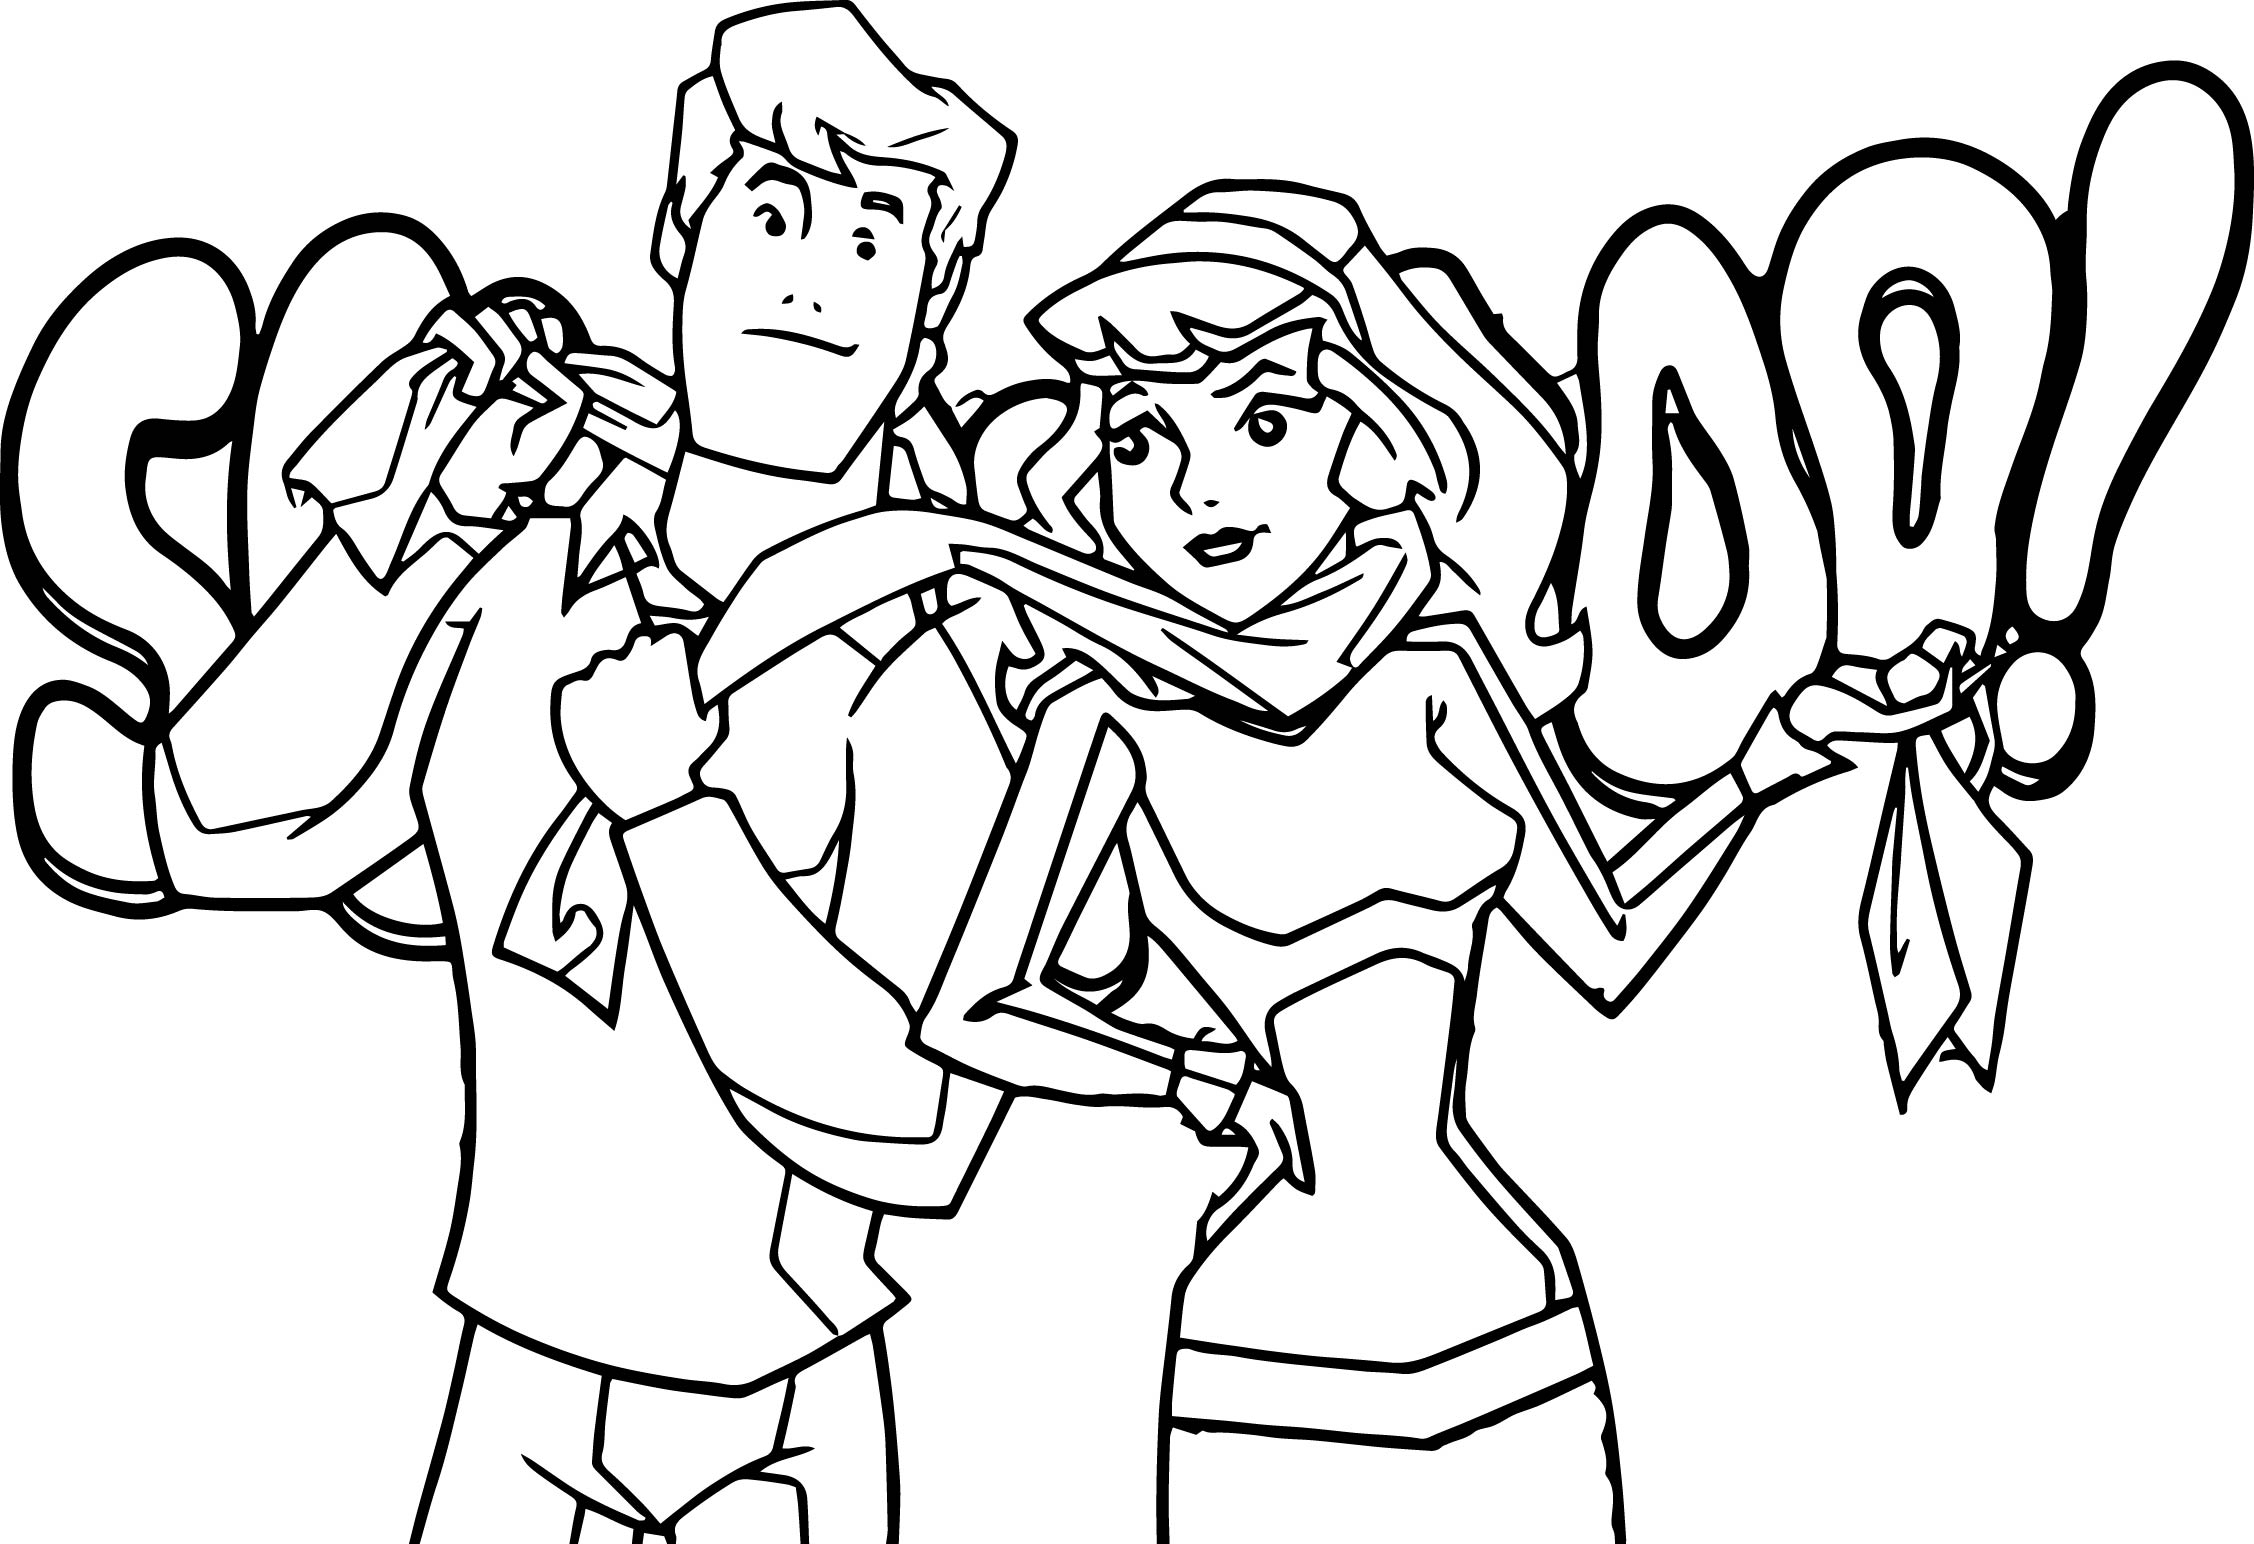 Daphne Scooby Doo Coloring Pages at GetDrawings | Free ...